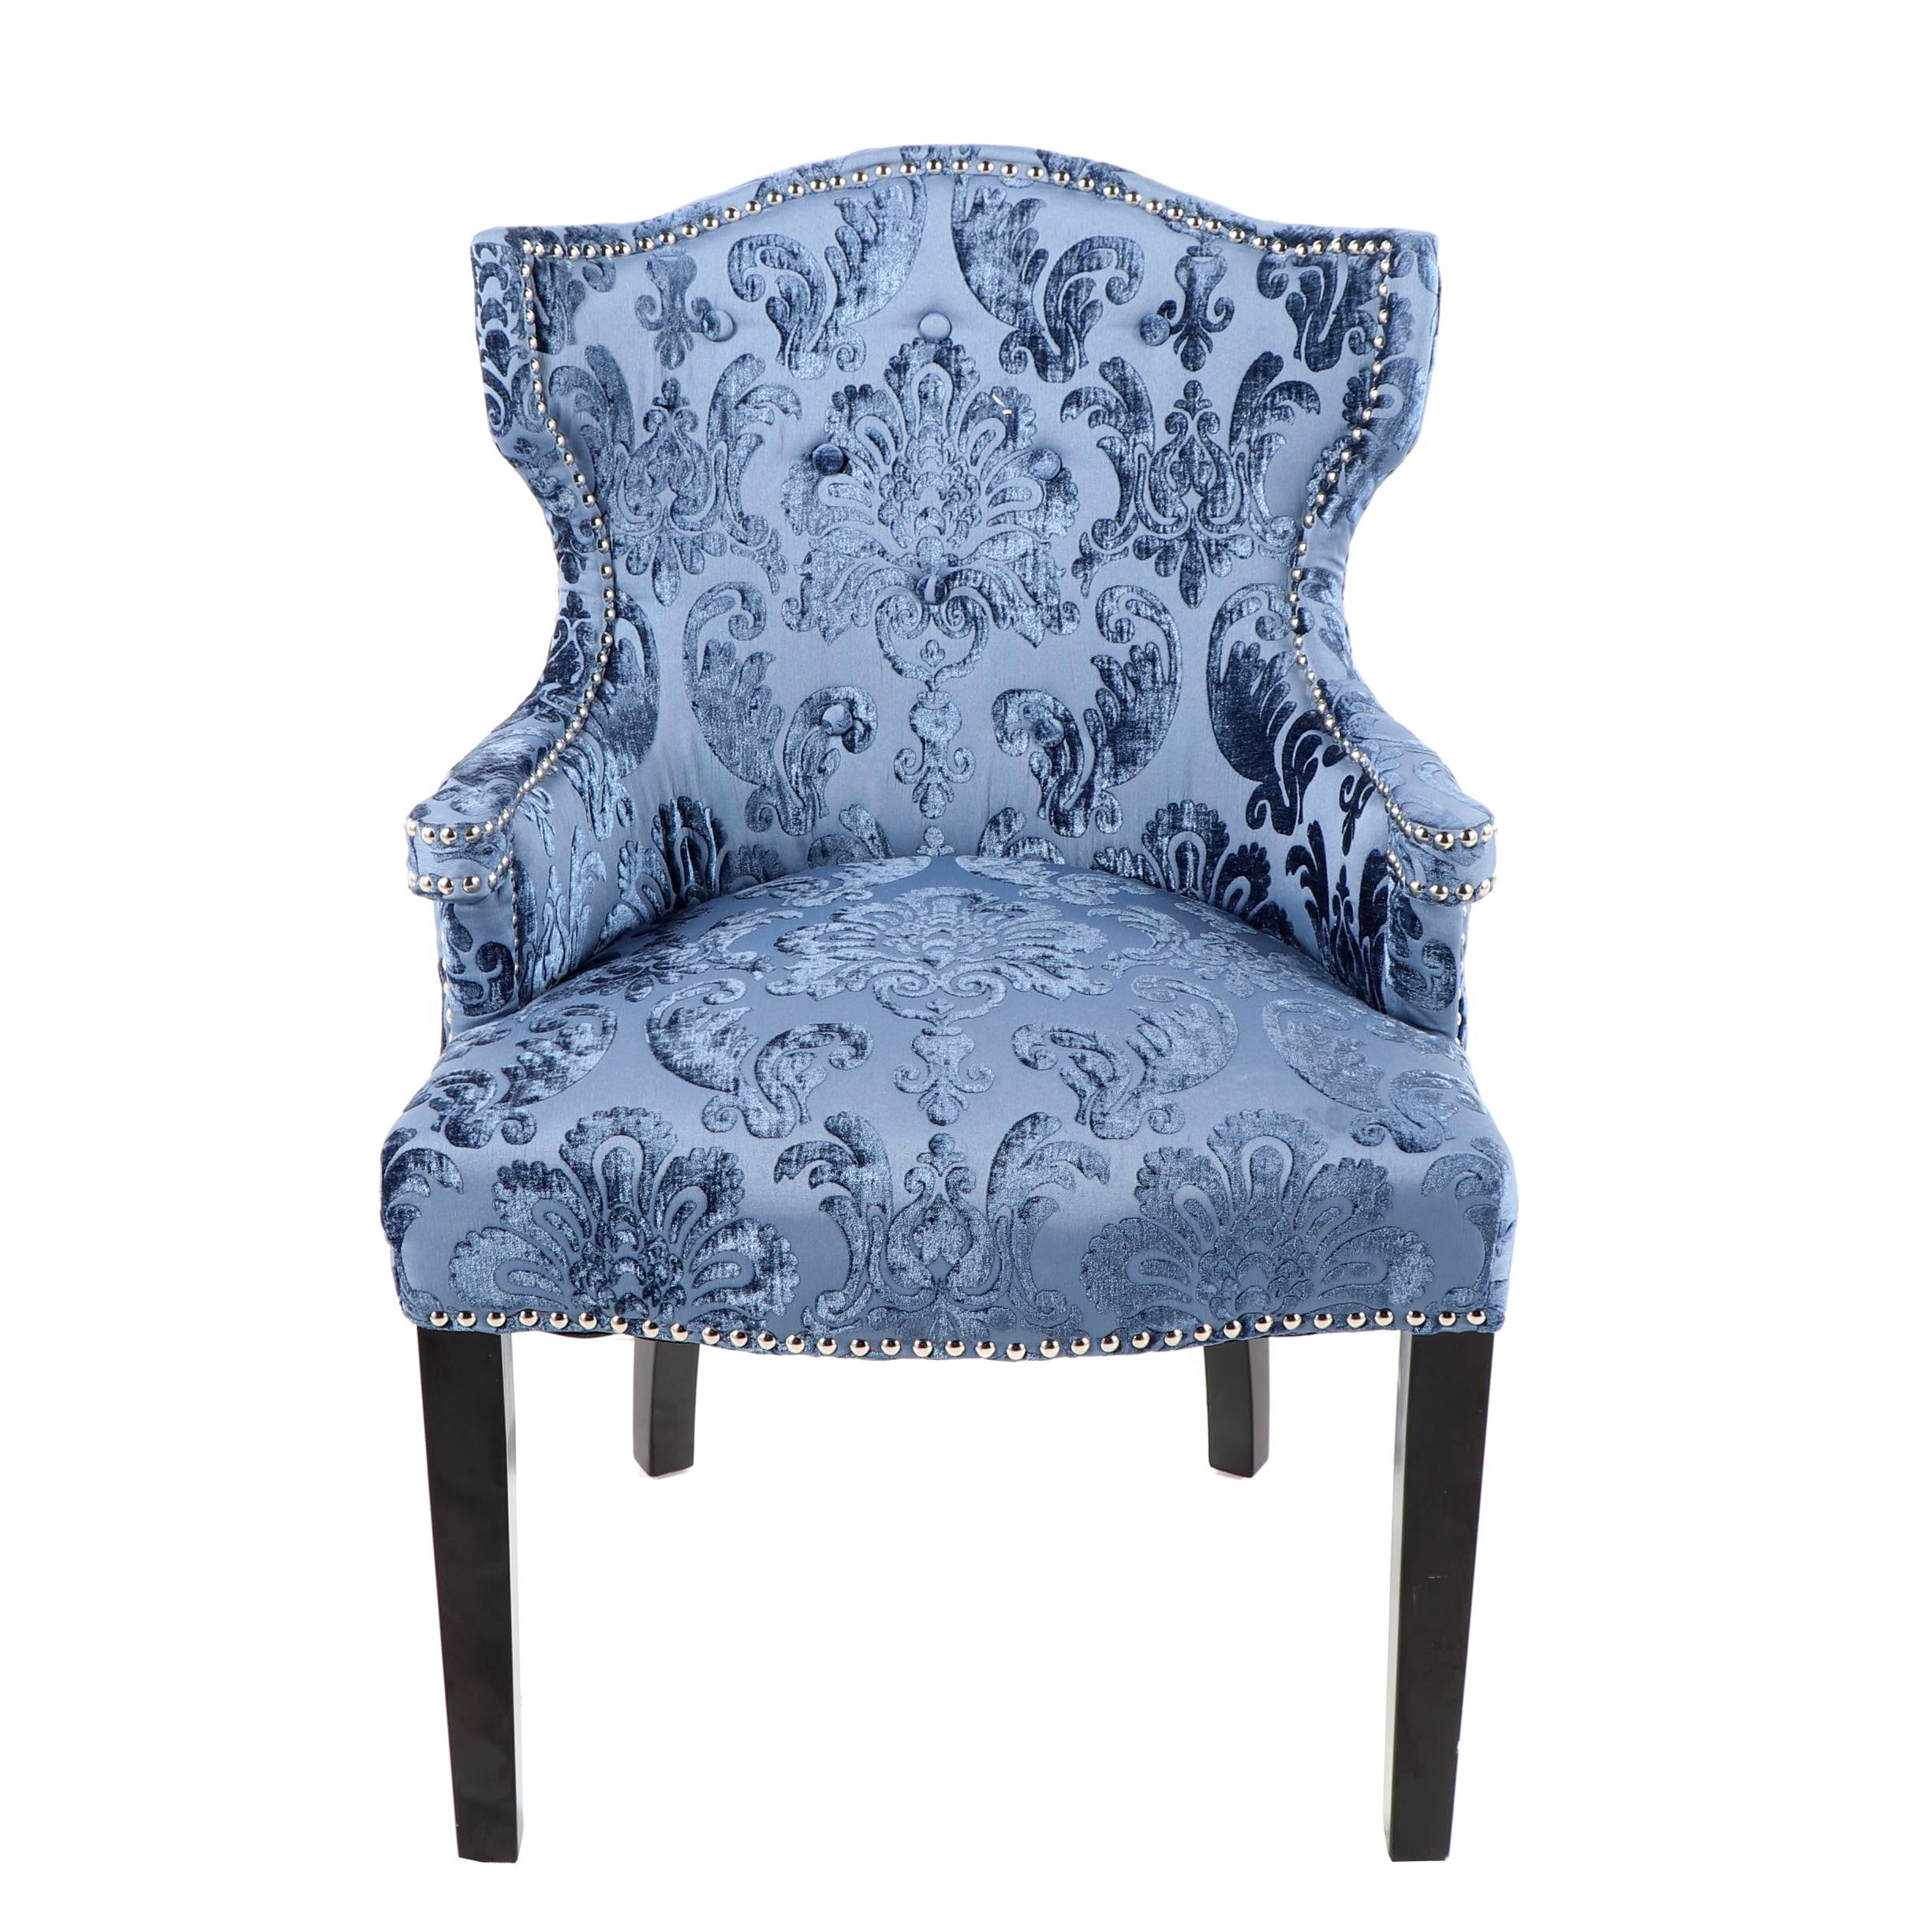 Blue Damask Upholstered Barrel Back Accent Chair